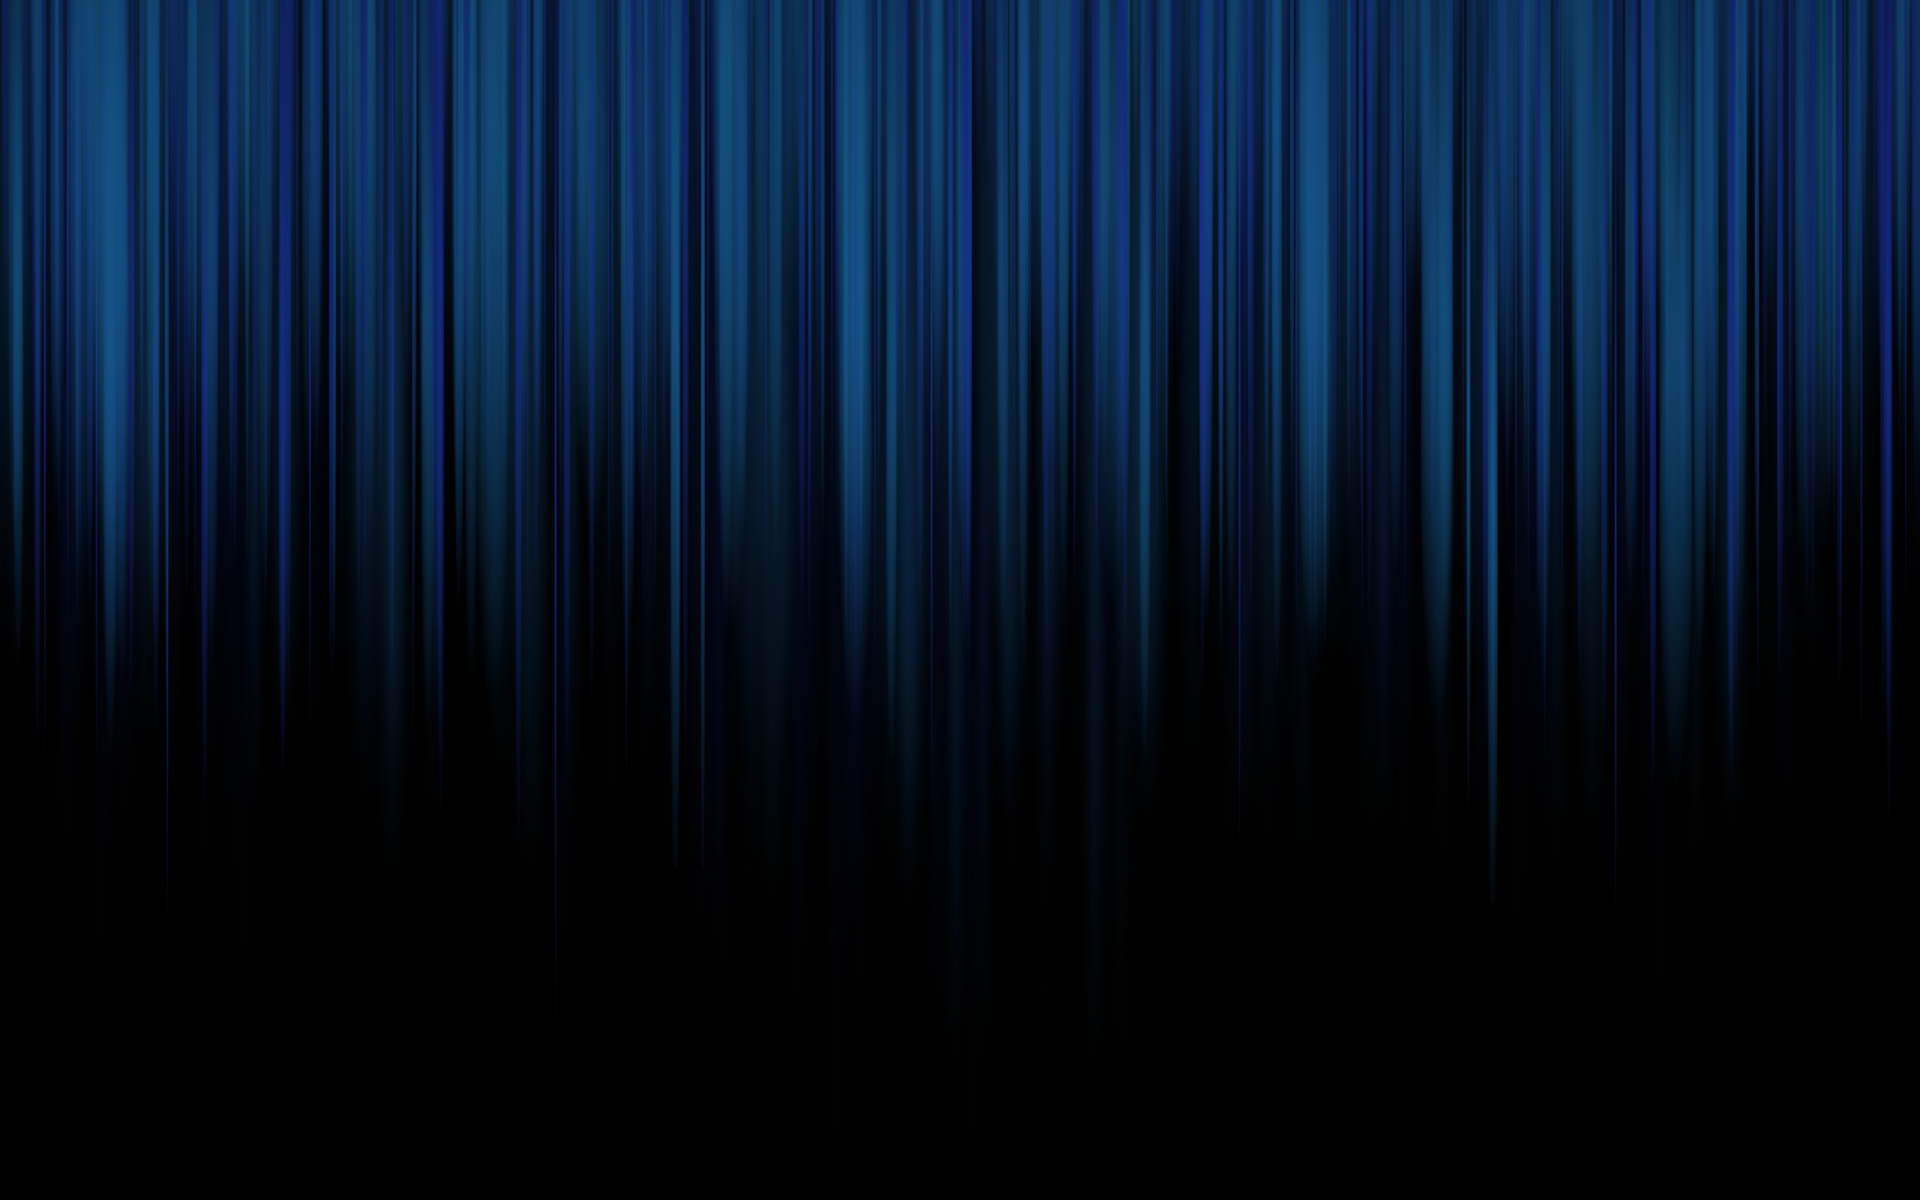 1920x1200 Black and Blue Stripes desktop PC and Mac wallpaper 1920x1200